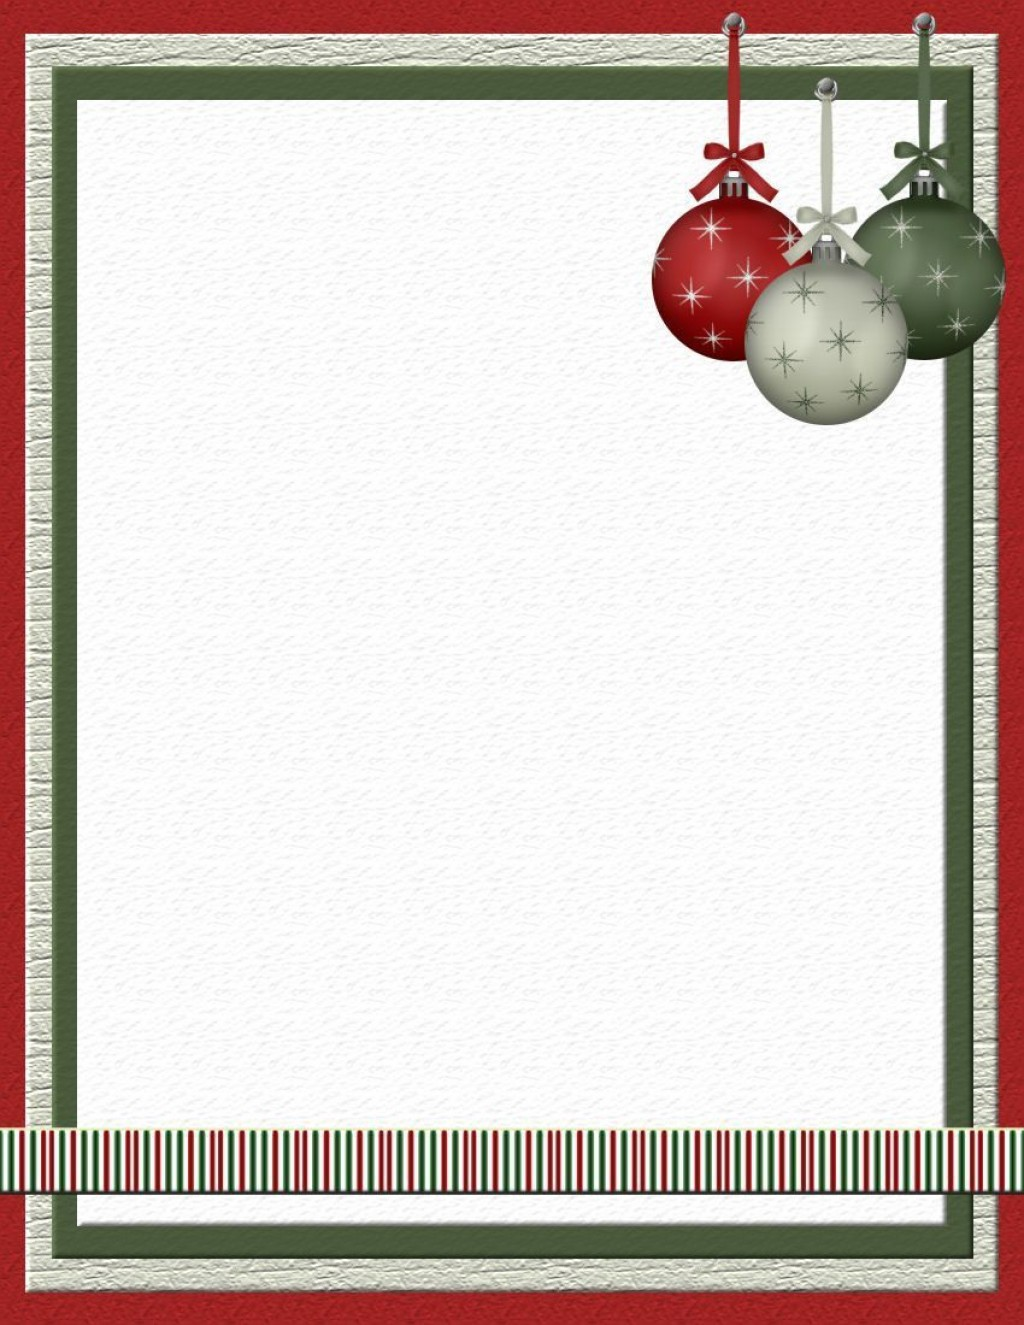 003 Staggering Free Holiday Stationery Template For Word Sample Large